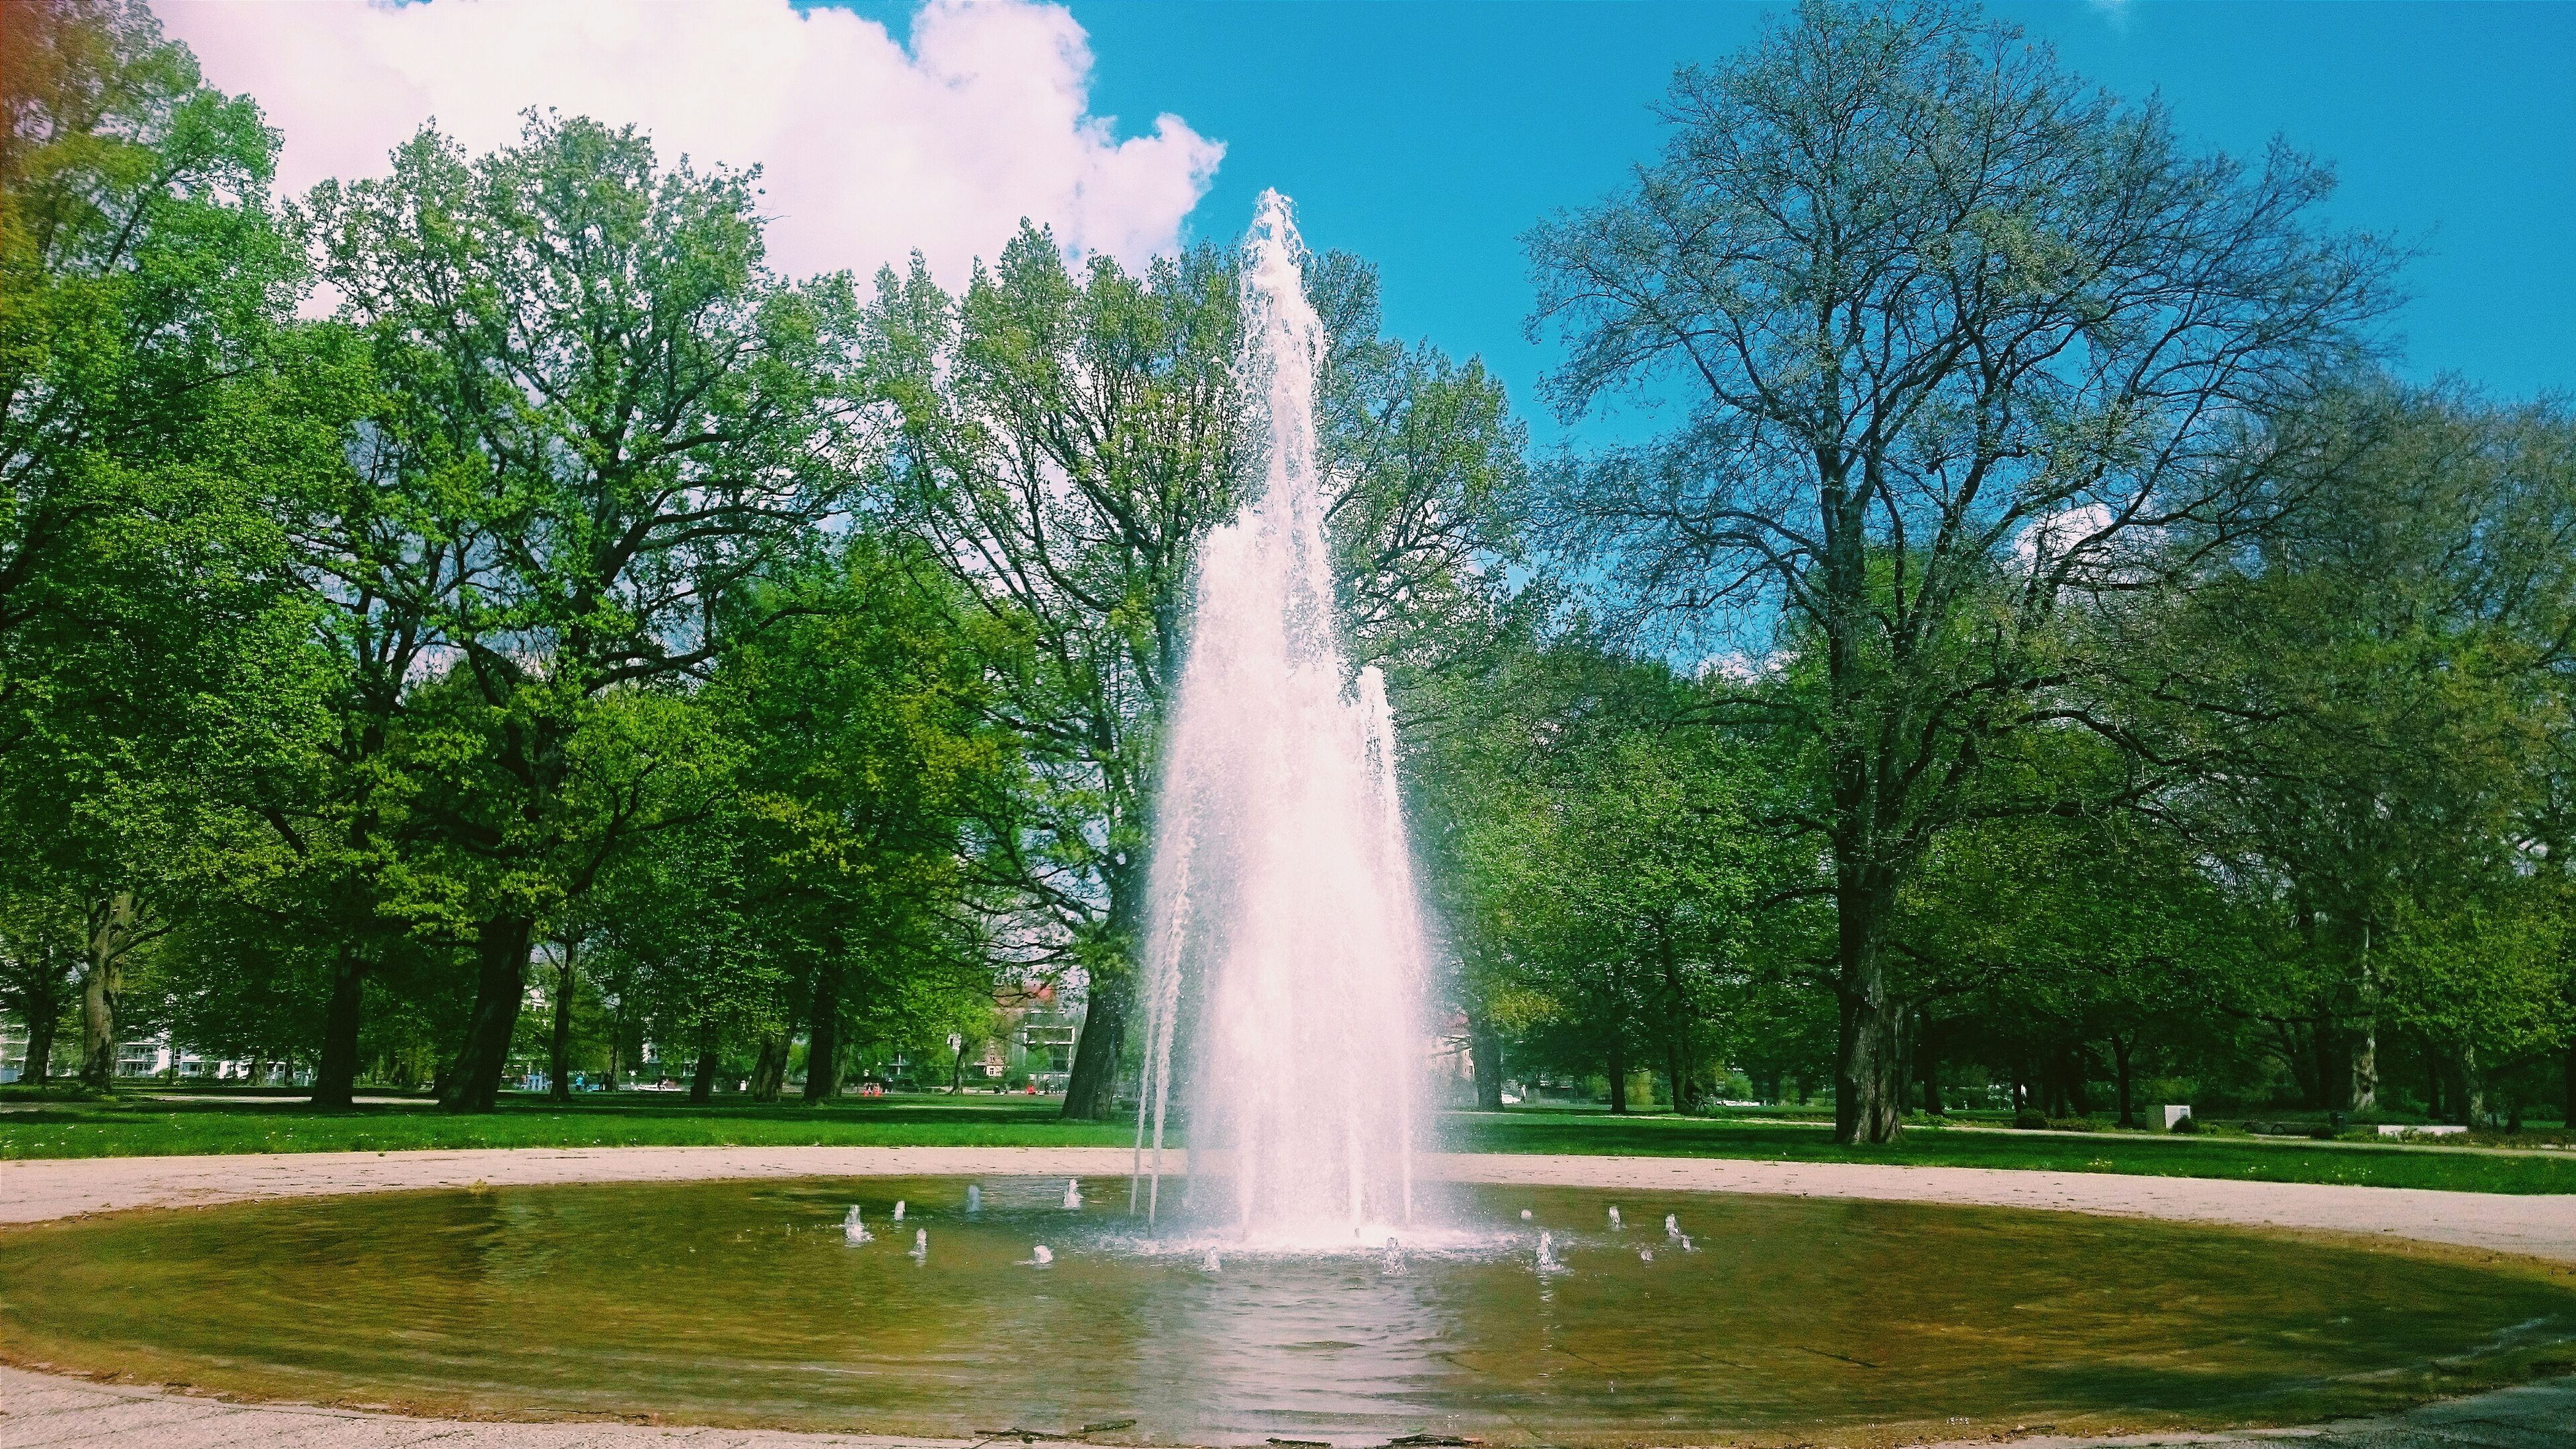 tree, fountain, park - man made space, water, grass, spraying, motion, growth, sculpture, blue, splashing, sky, statue, green color, nature, park, formal garden, sunlight, built structure, clear sky